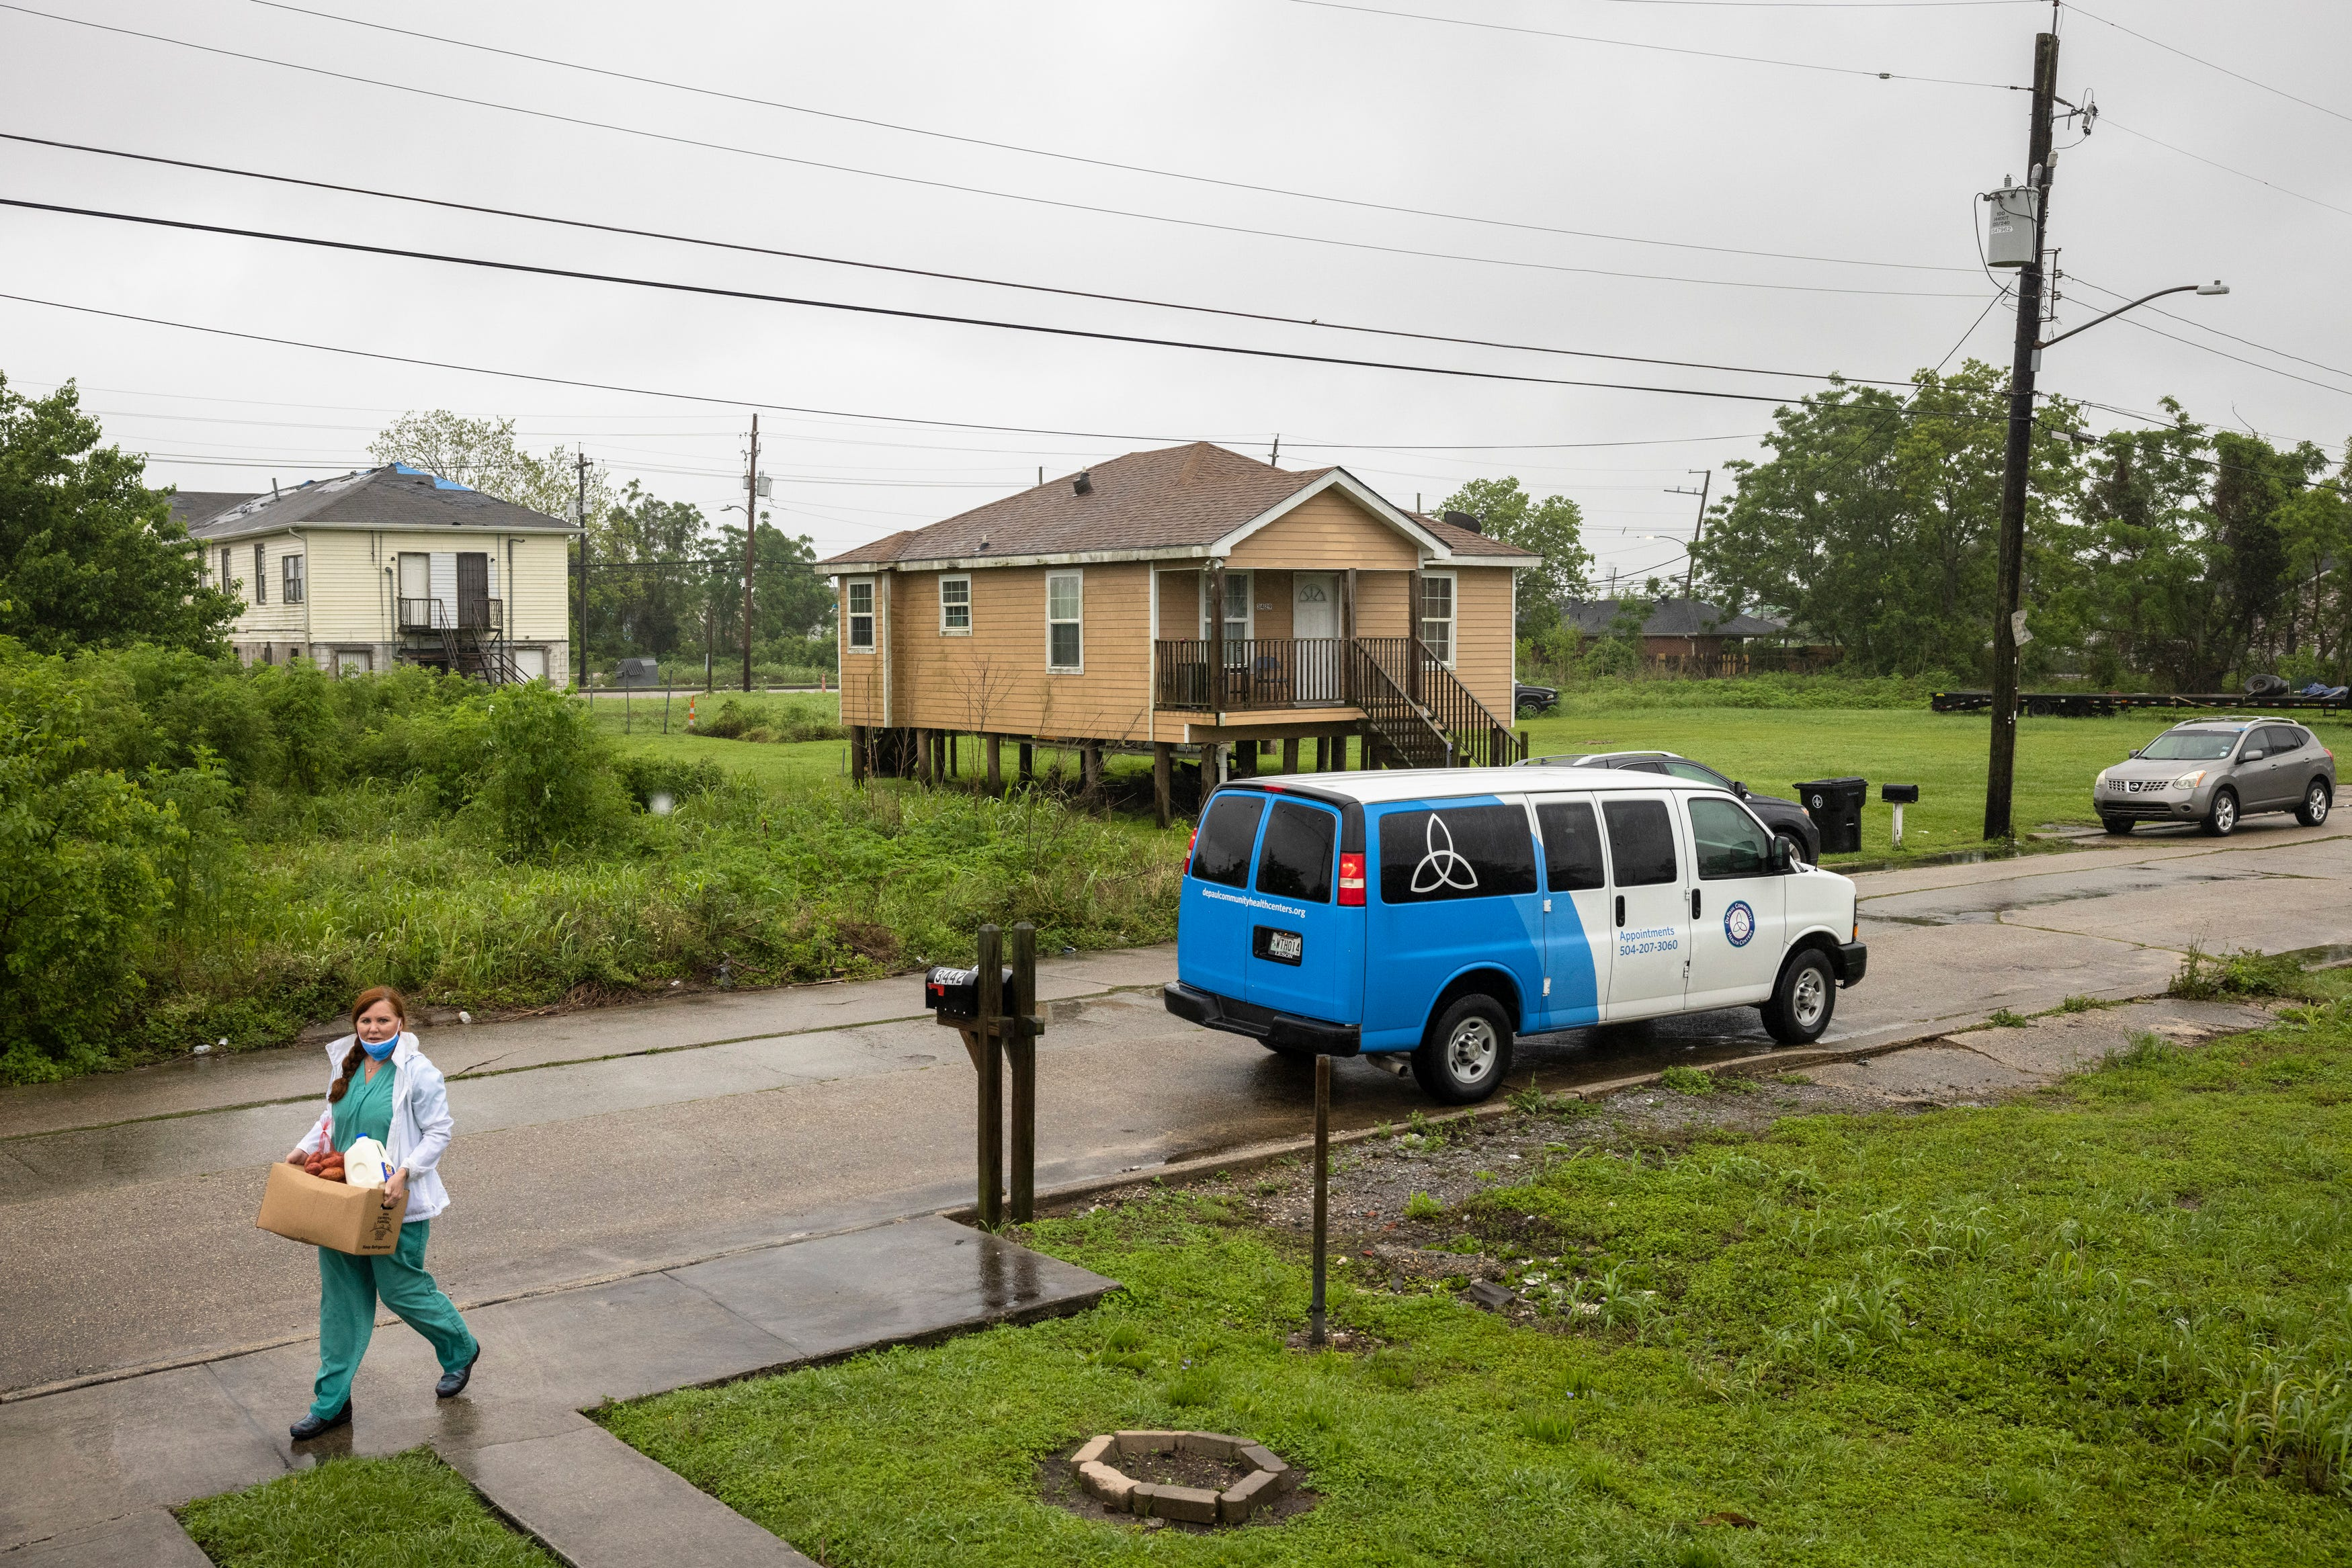 Nurse practitioner Sophia Thomas delivers food to a resident while going door-to-door attempting to administer COVID-19 vaccines in New Orleans on Saturday, April 17, 2021.